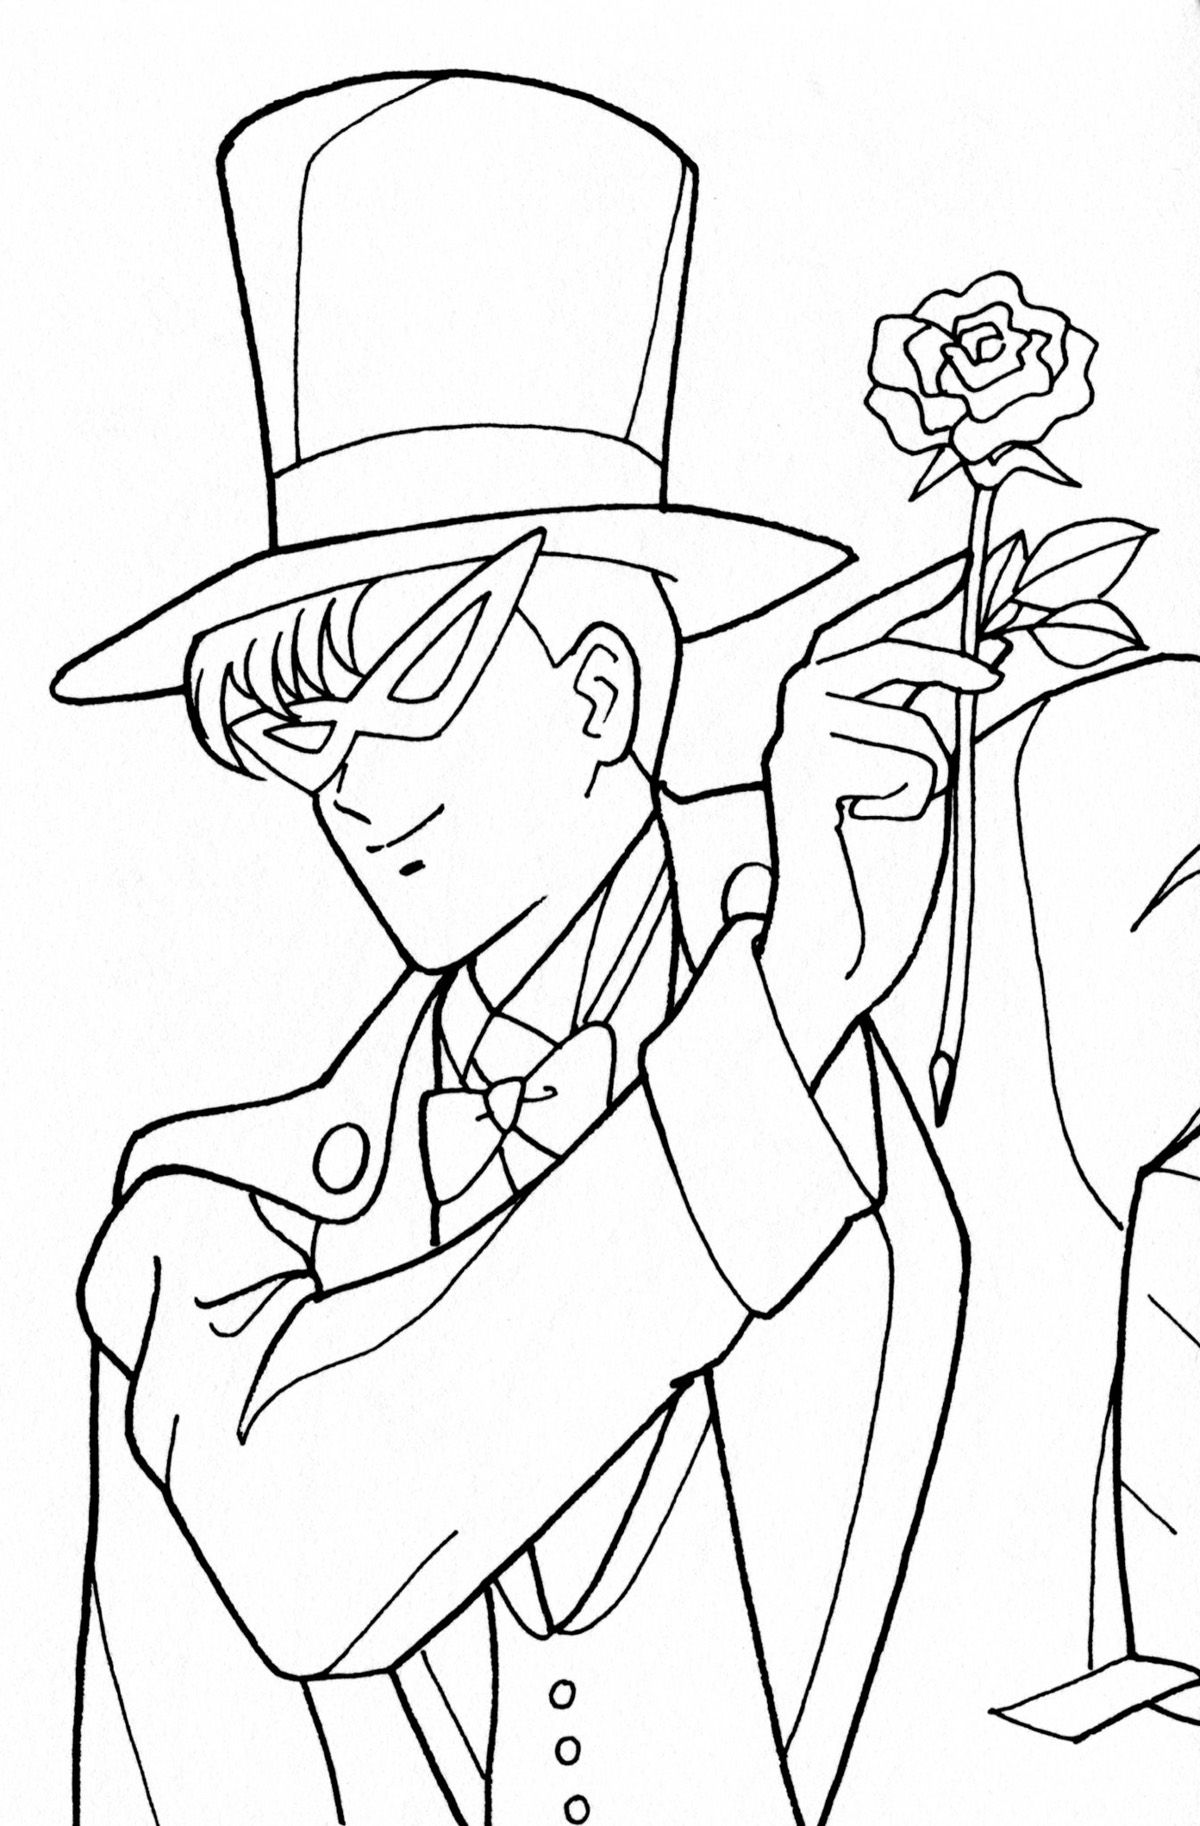 Tuxedo Kamen Coloring Page // #sailormoon | Sailor Moon ...